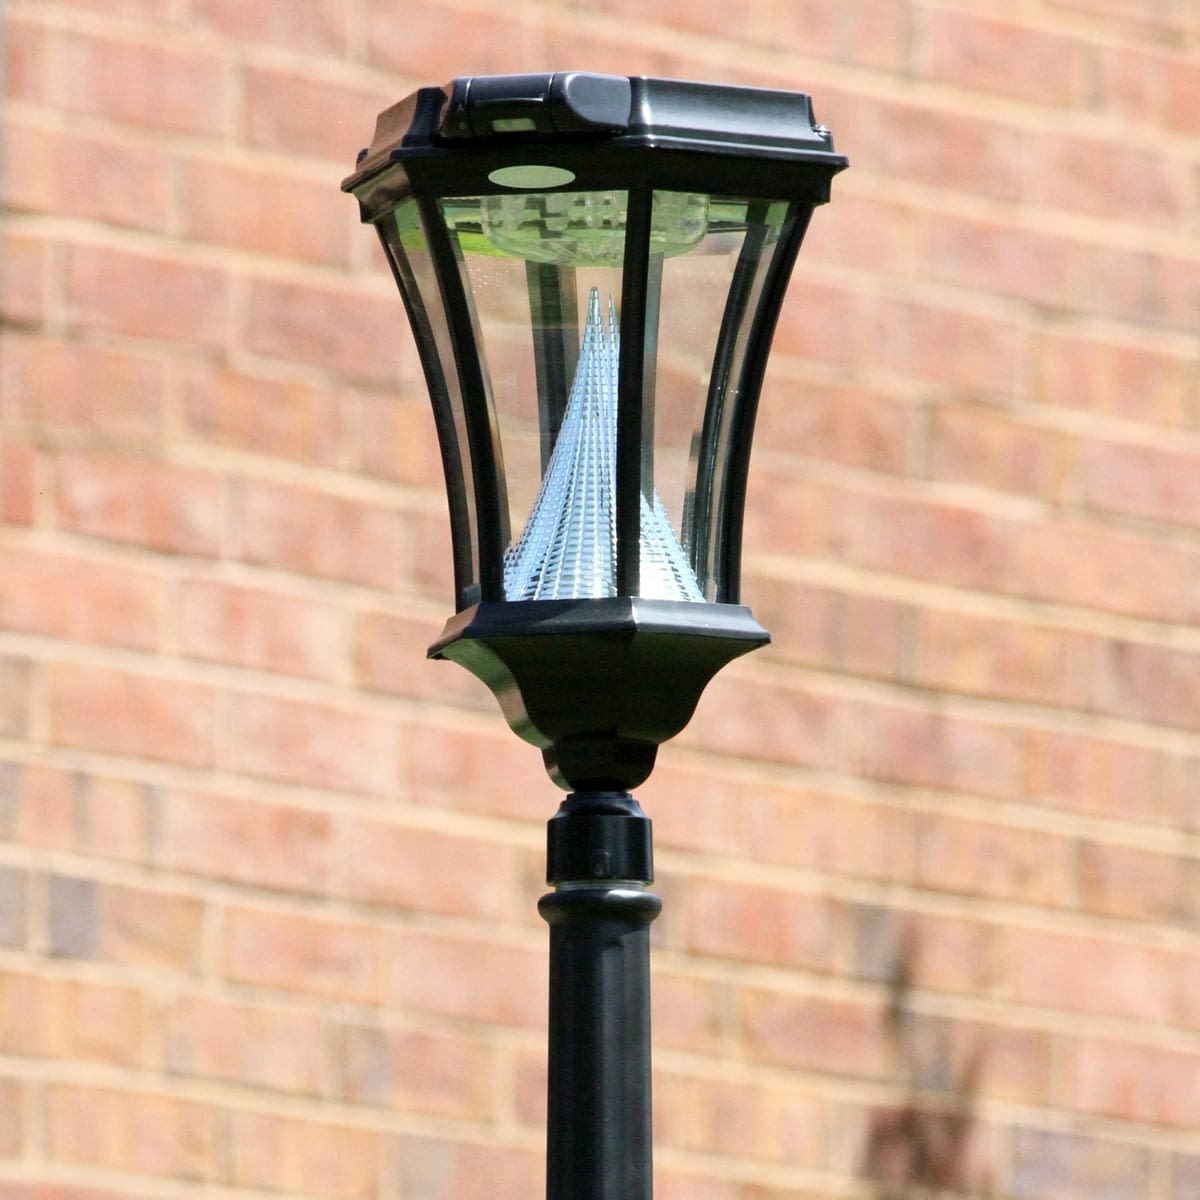 Victorian Pir Series Solar Lamp Post With Motion Sensor GS-94PIR-S